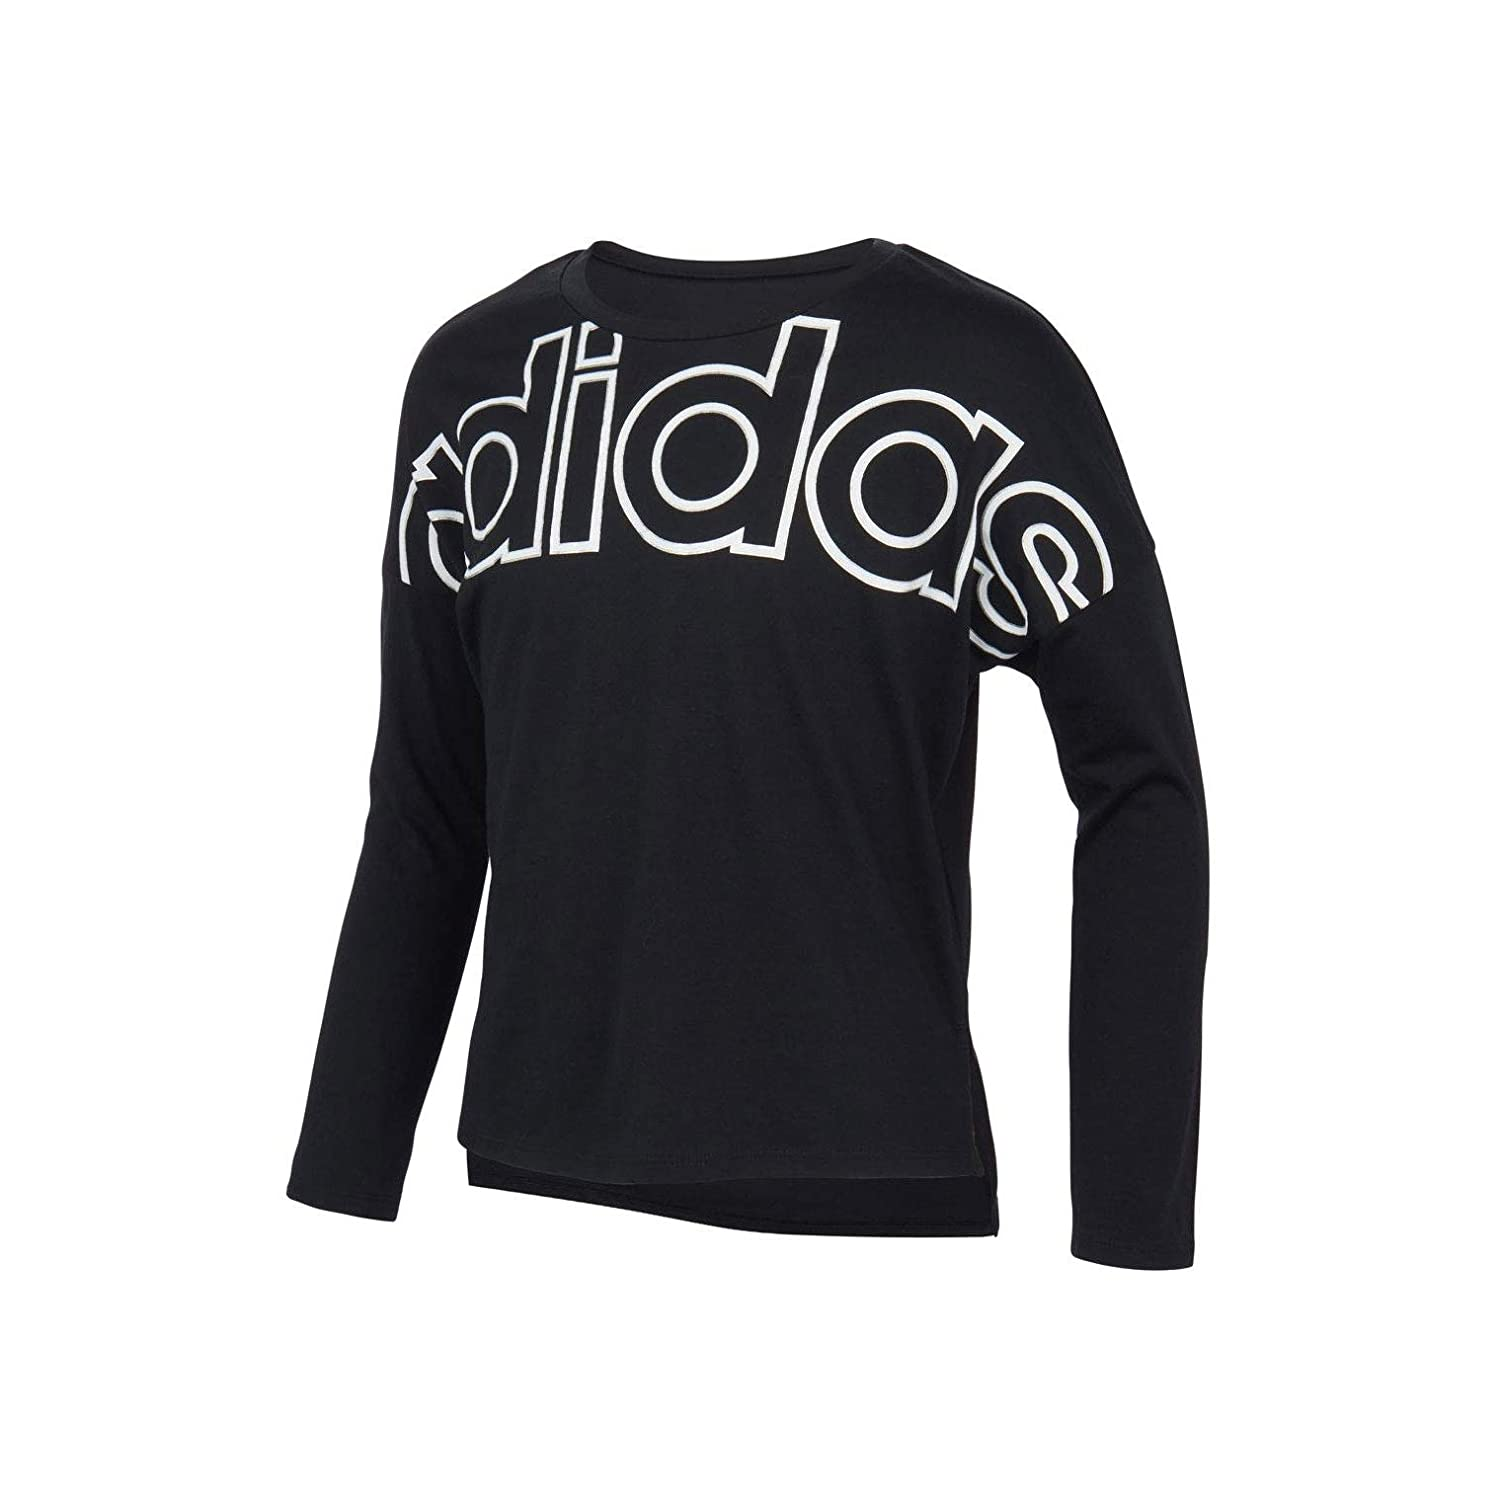 adidas Girls Long Sleeve Cropped Tee T-Shirt